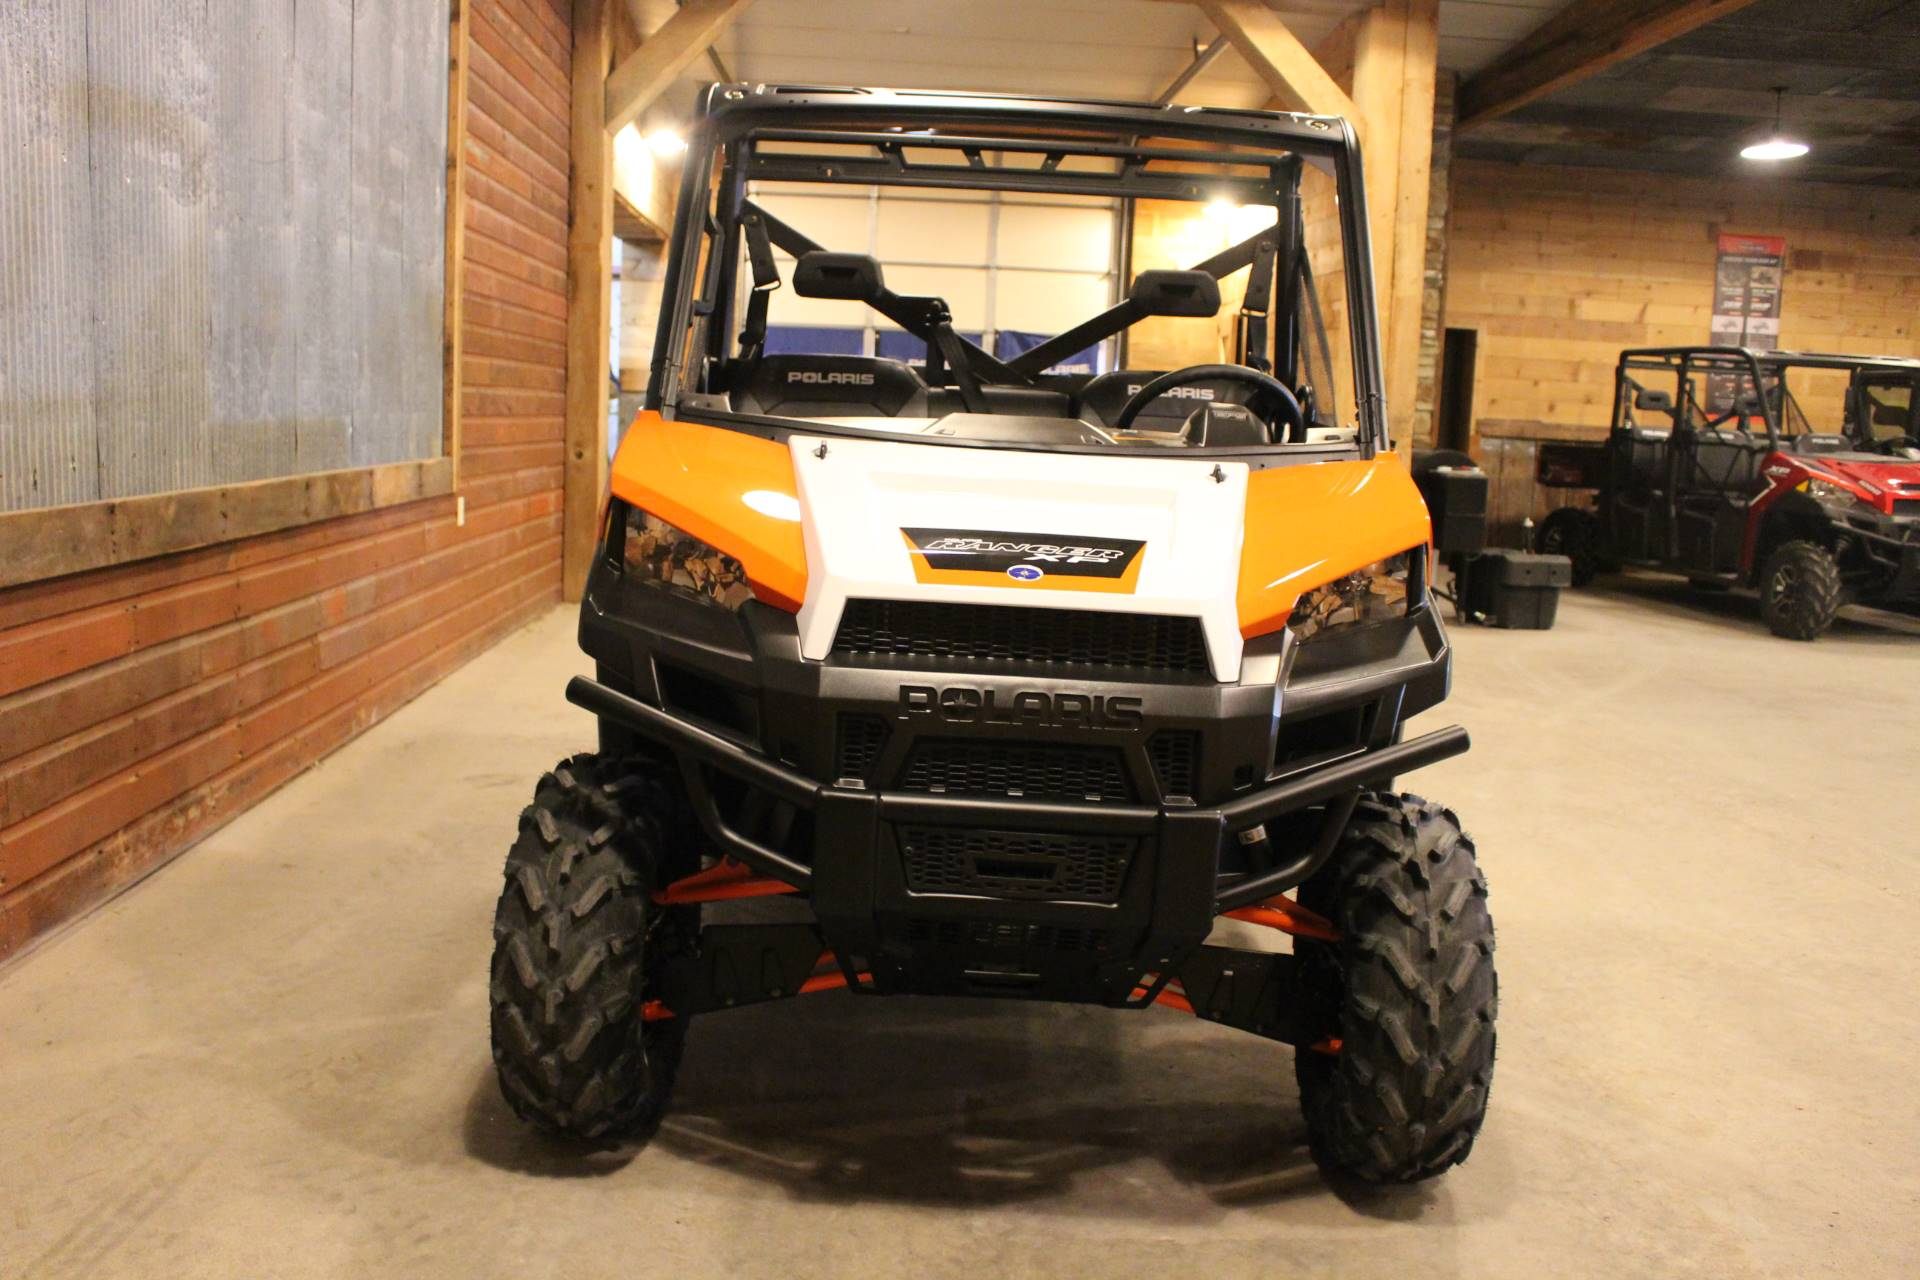 2019 Polaris Ranger XP 900 EPS 4